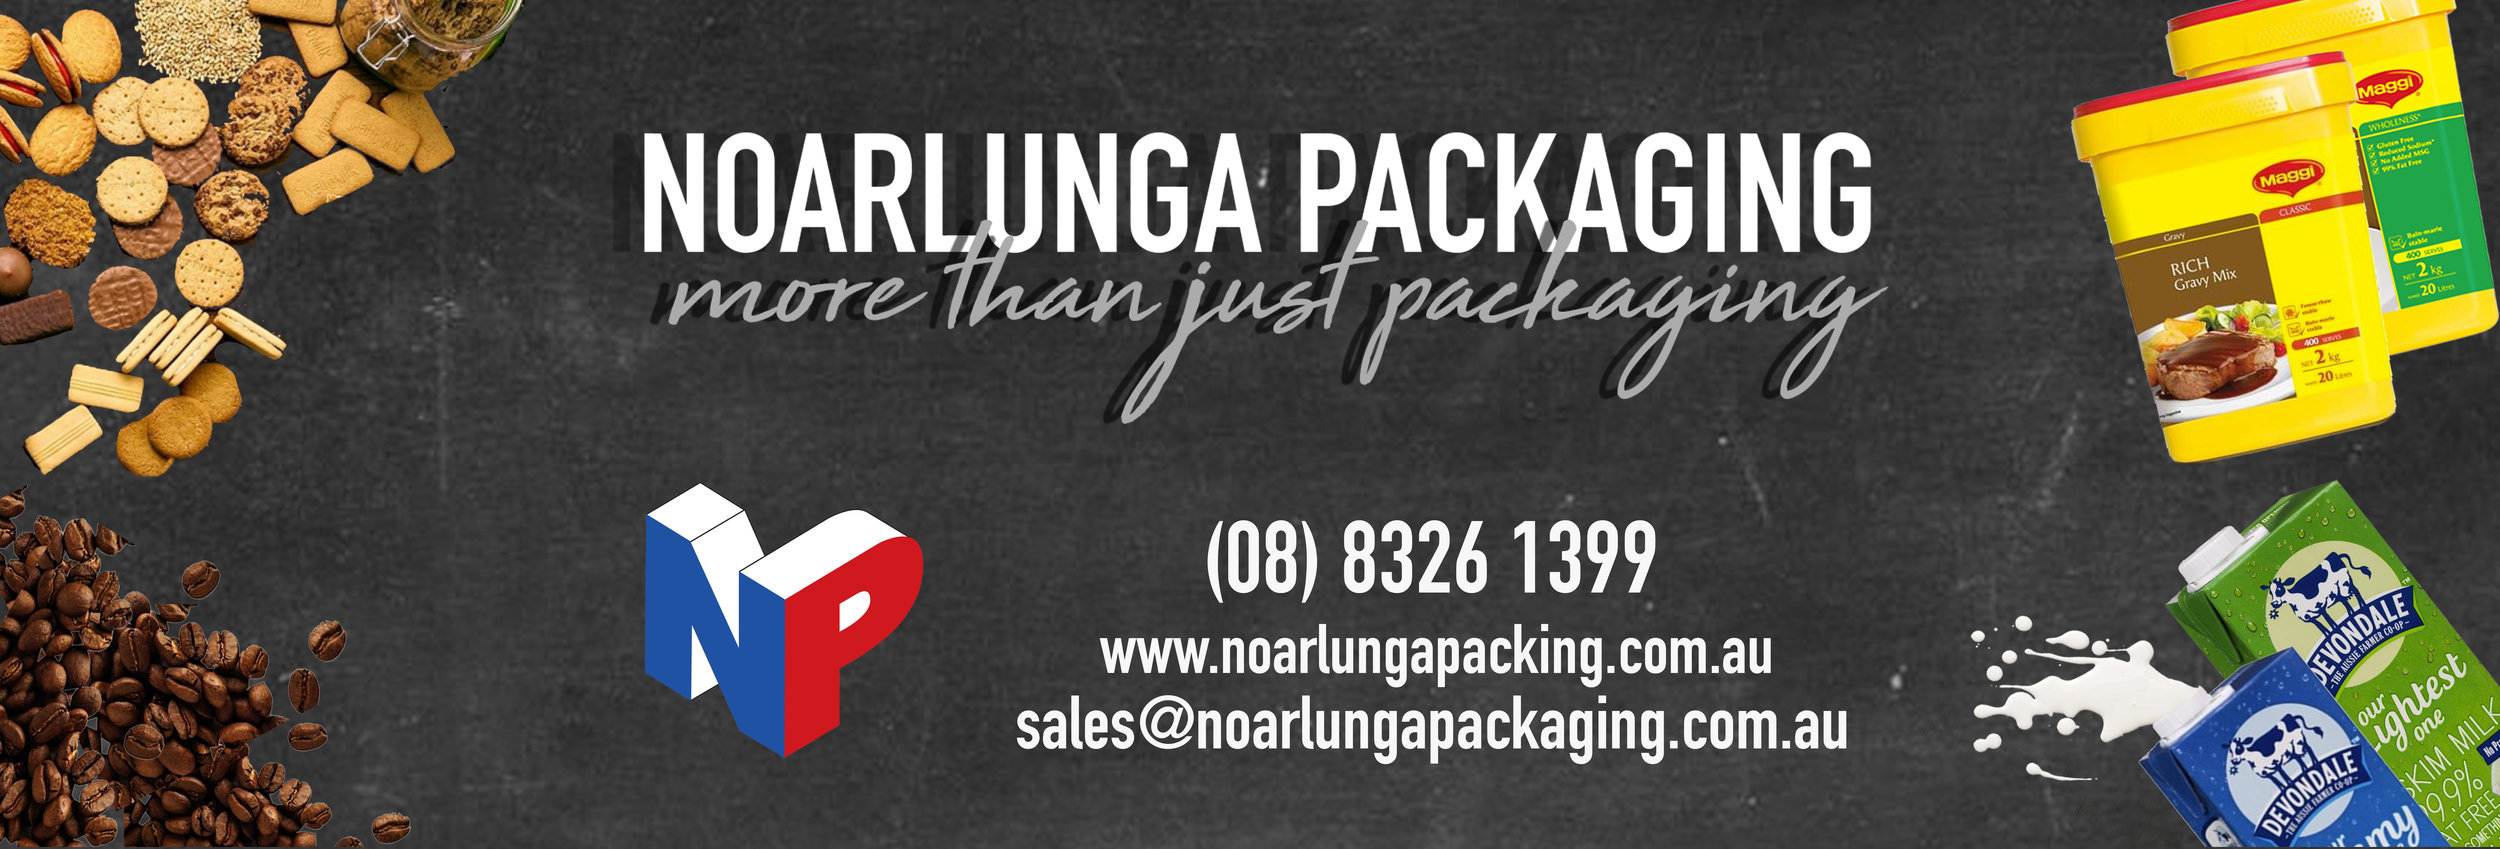 Noarlunga Packaging .jpg